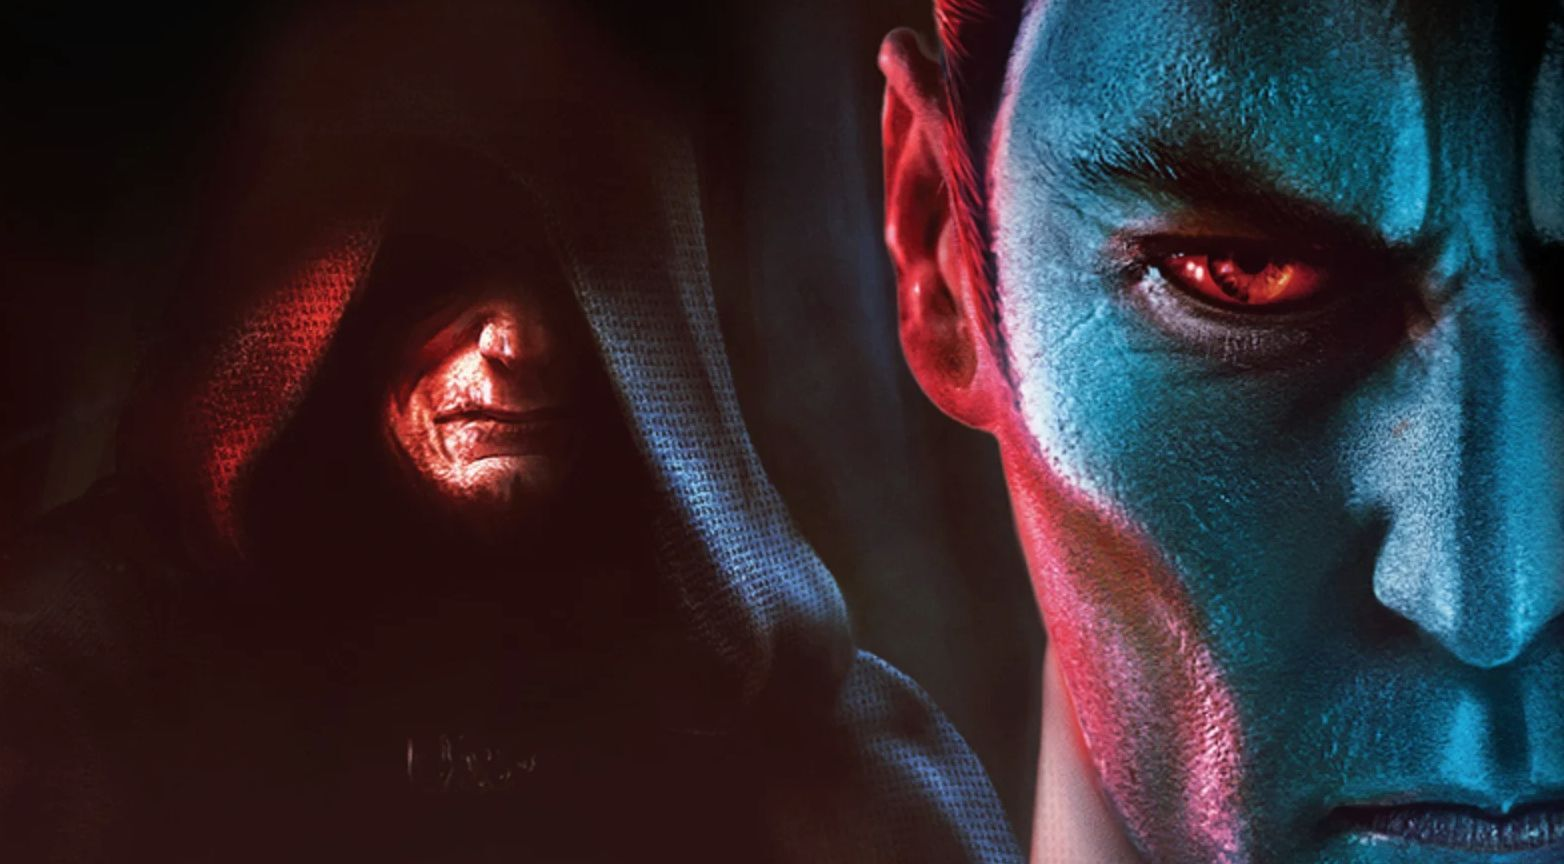 Read an excerpt from Thrawn: Treason, the new Star Wars book